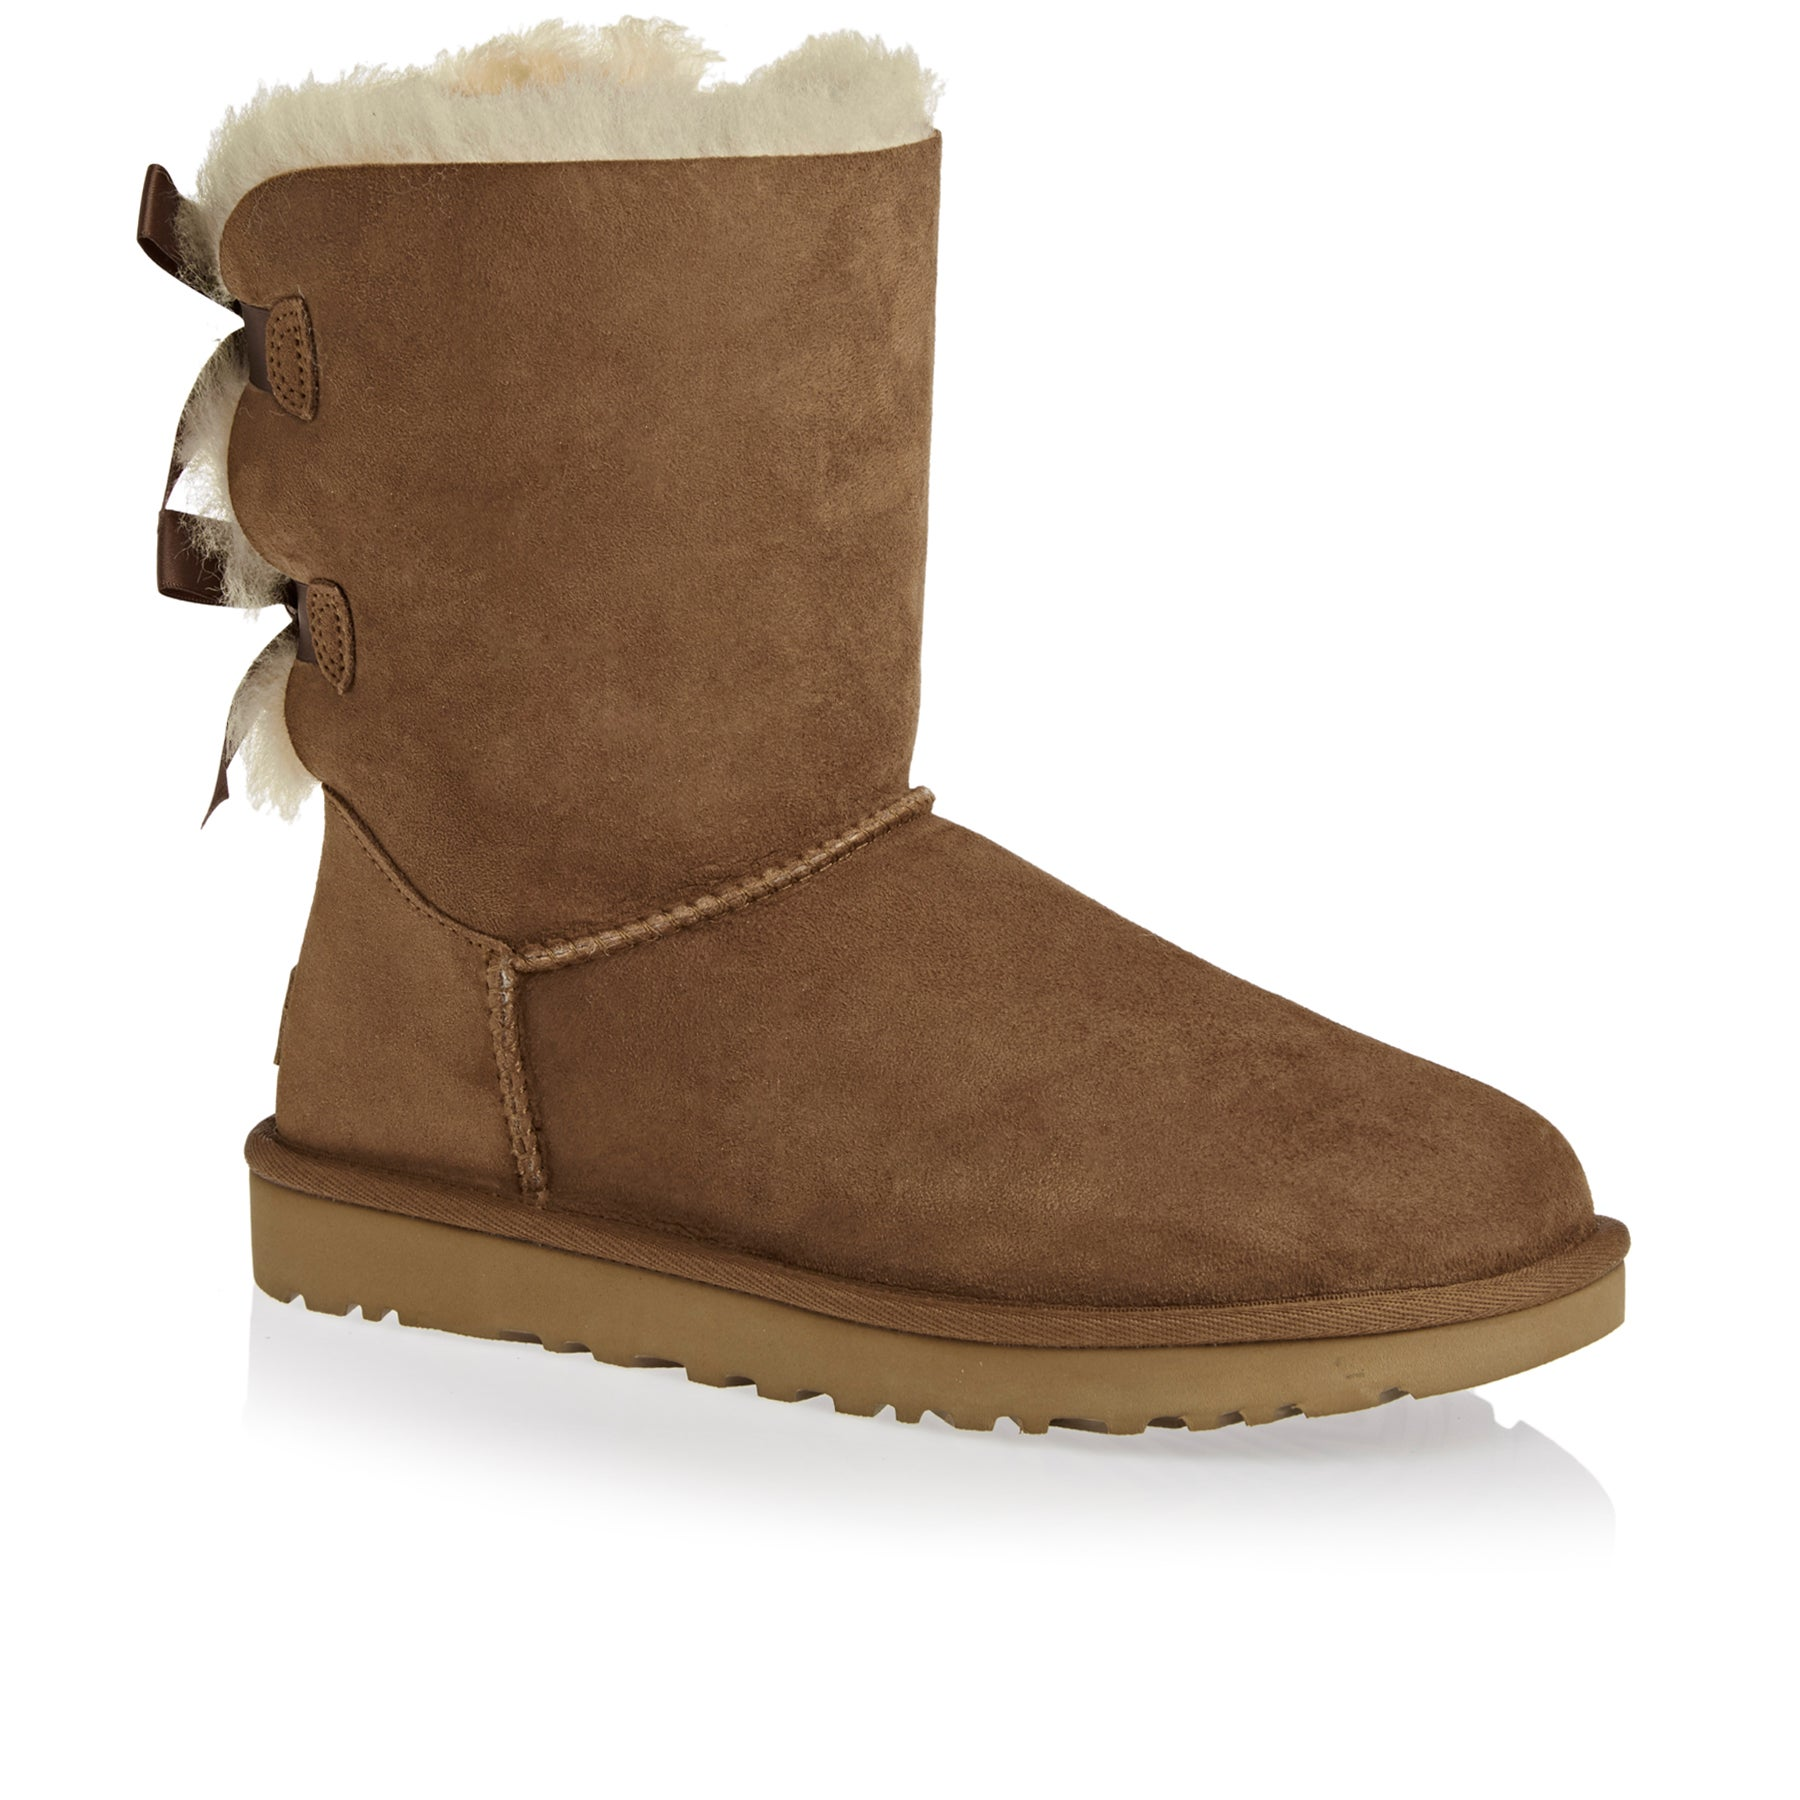 e200269abd2 UGG Bailey Bow II Womens Boots available from Surfdome